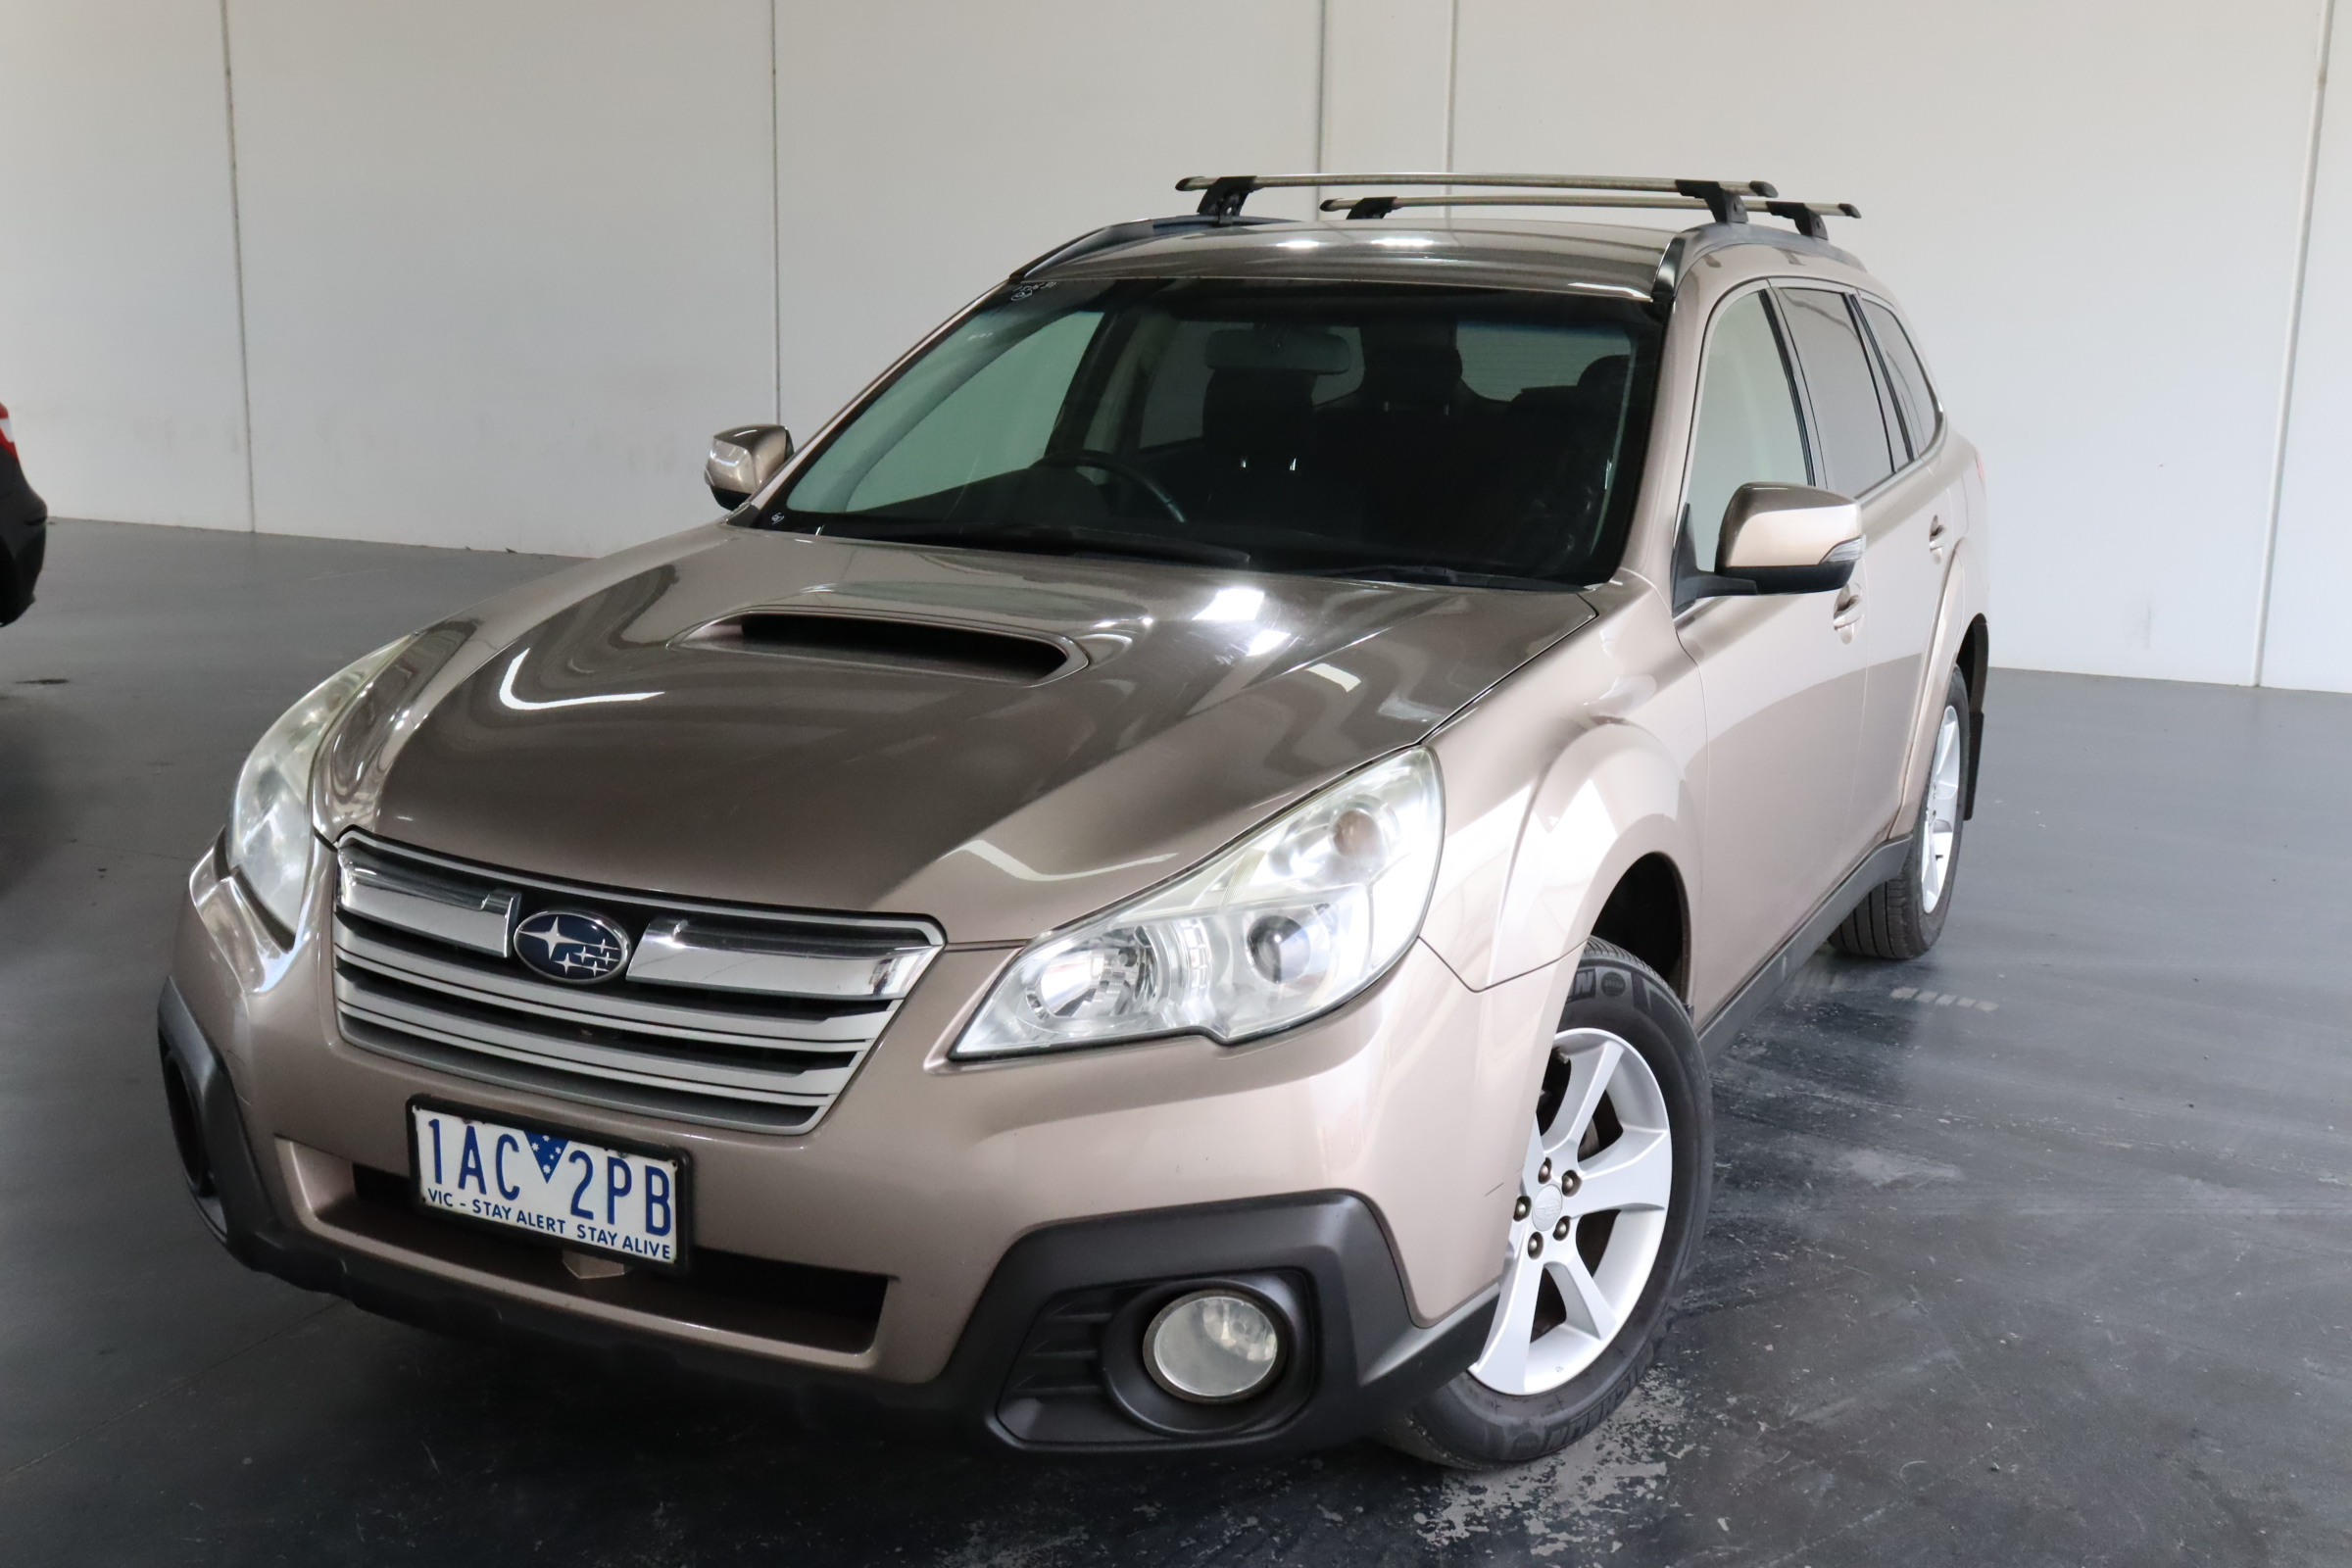 2012 Subaru Outback 2.0D B5A Turbo Diesel Manual Wagon